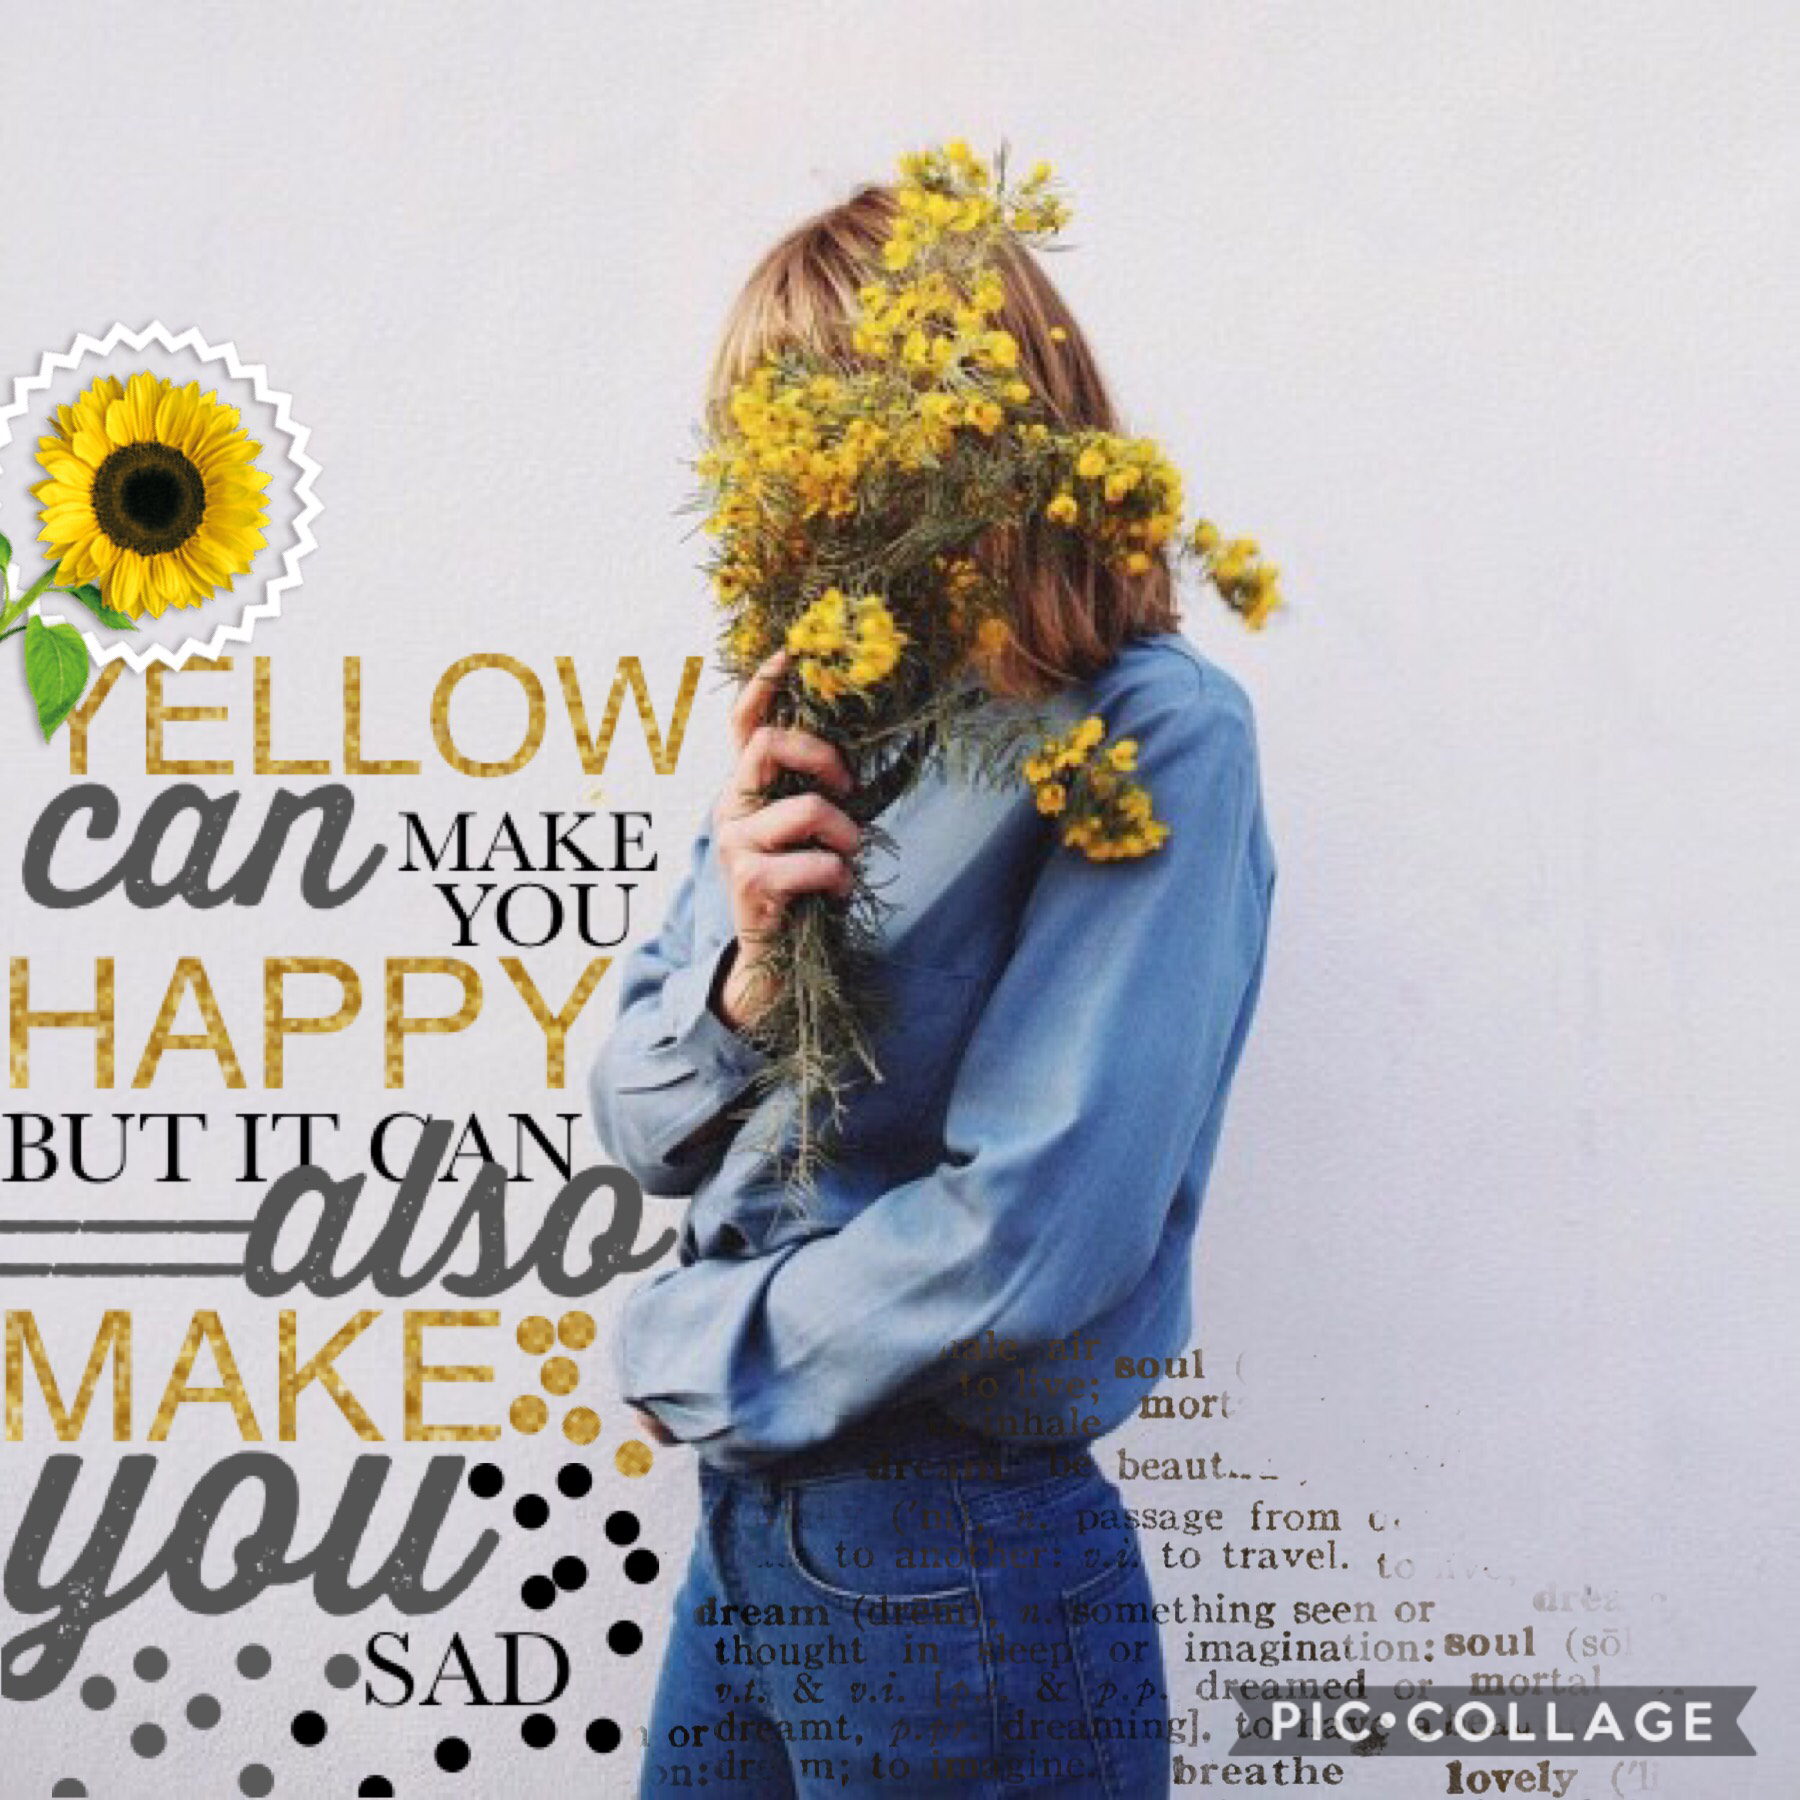 hello! — Tap  So wassup? Tysm for feature on my last collage!! 😘 idk how that happened 😂😂 anyways I'm bored and just woke up and I'm sore! There's my life 😂😂🤦🏼♀️